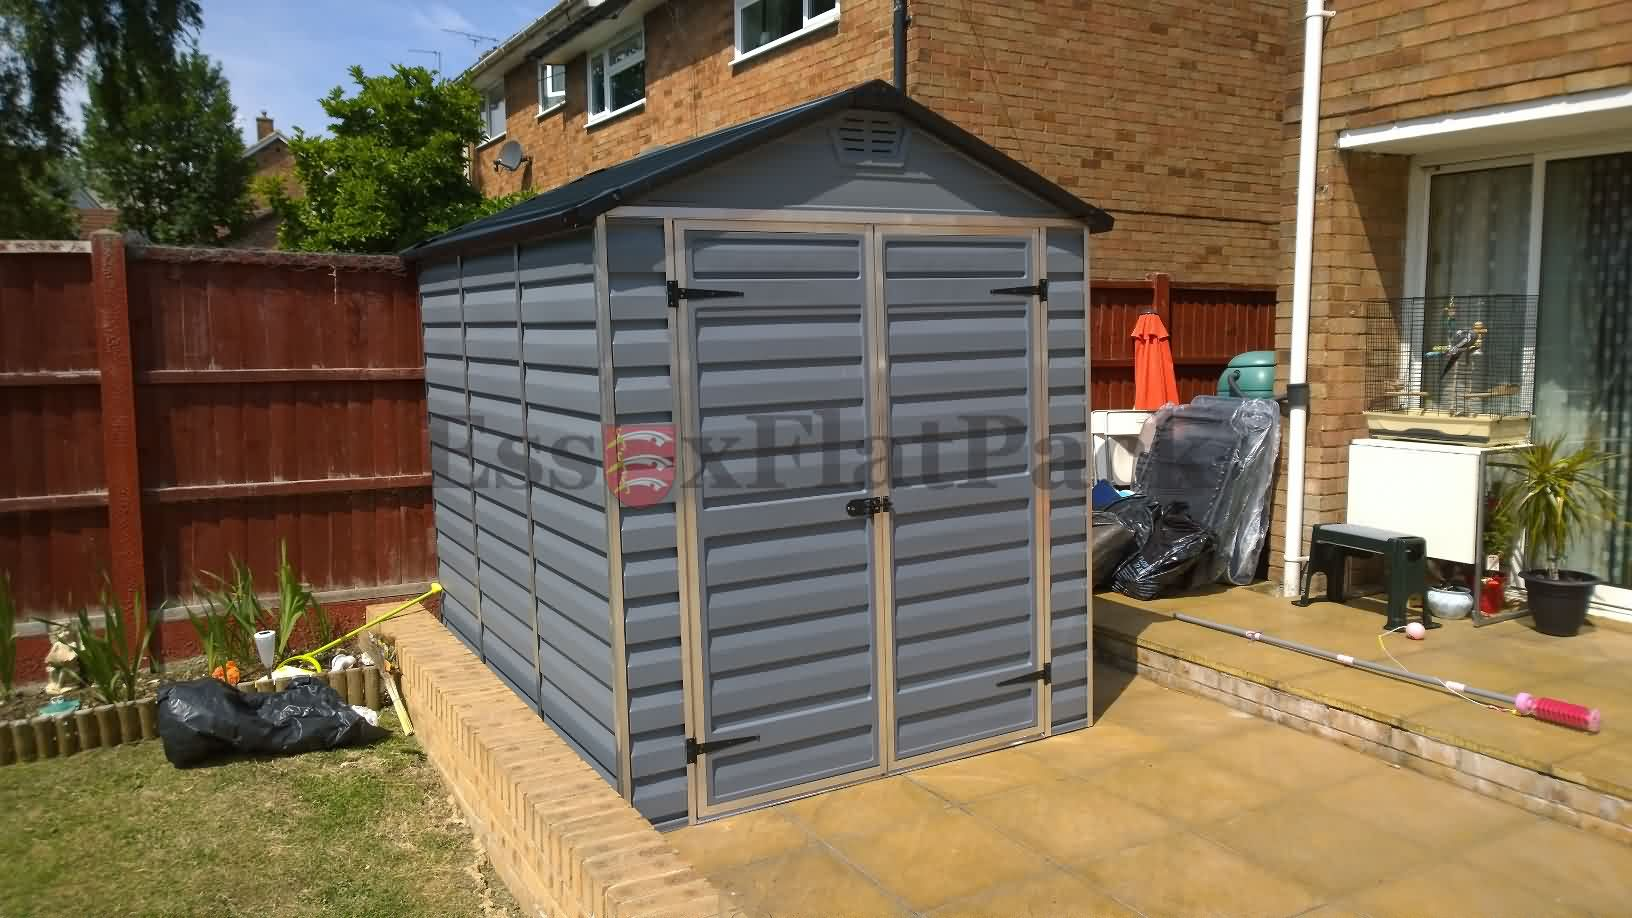 Shed Assembly Service Uk Related Keywords & Suggestions - Shed